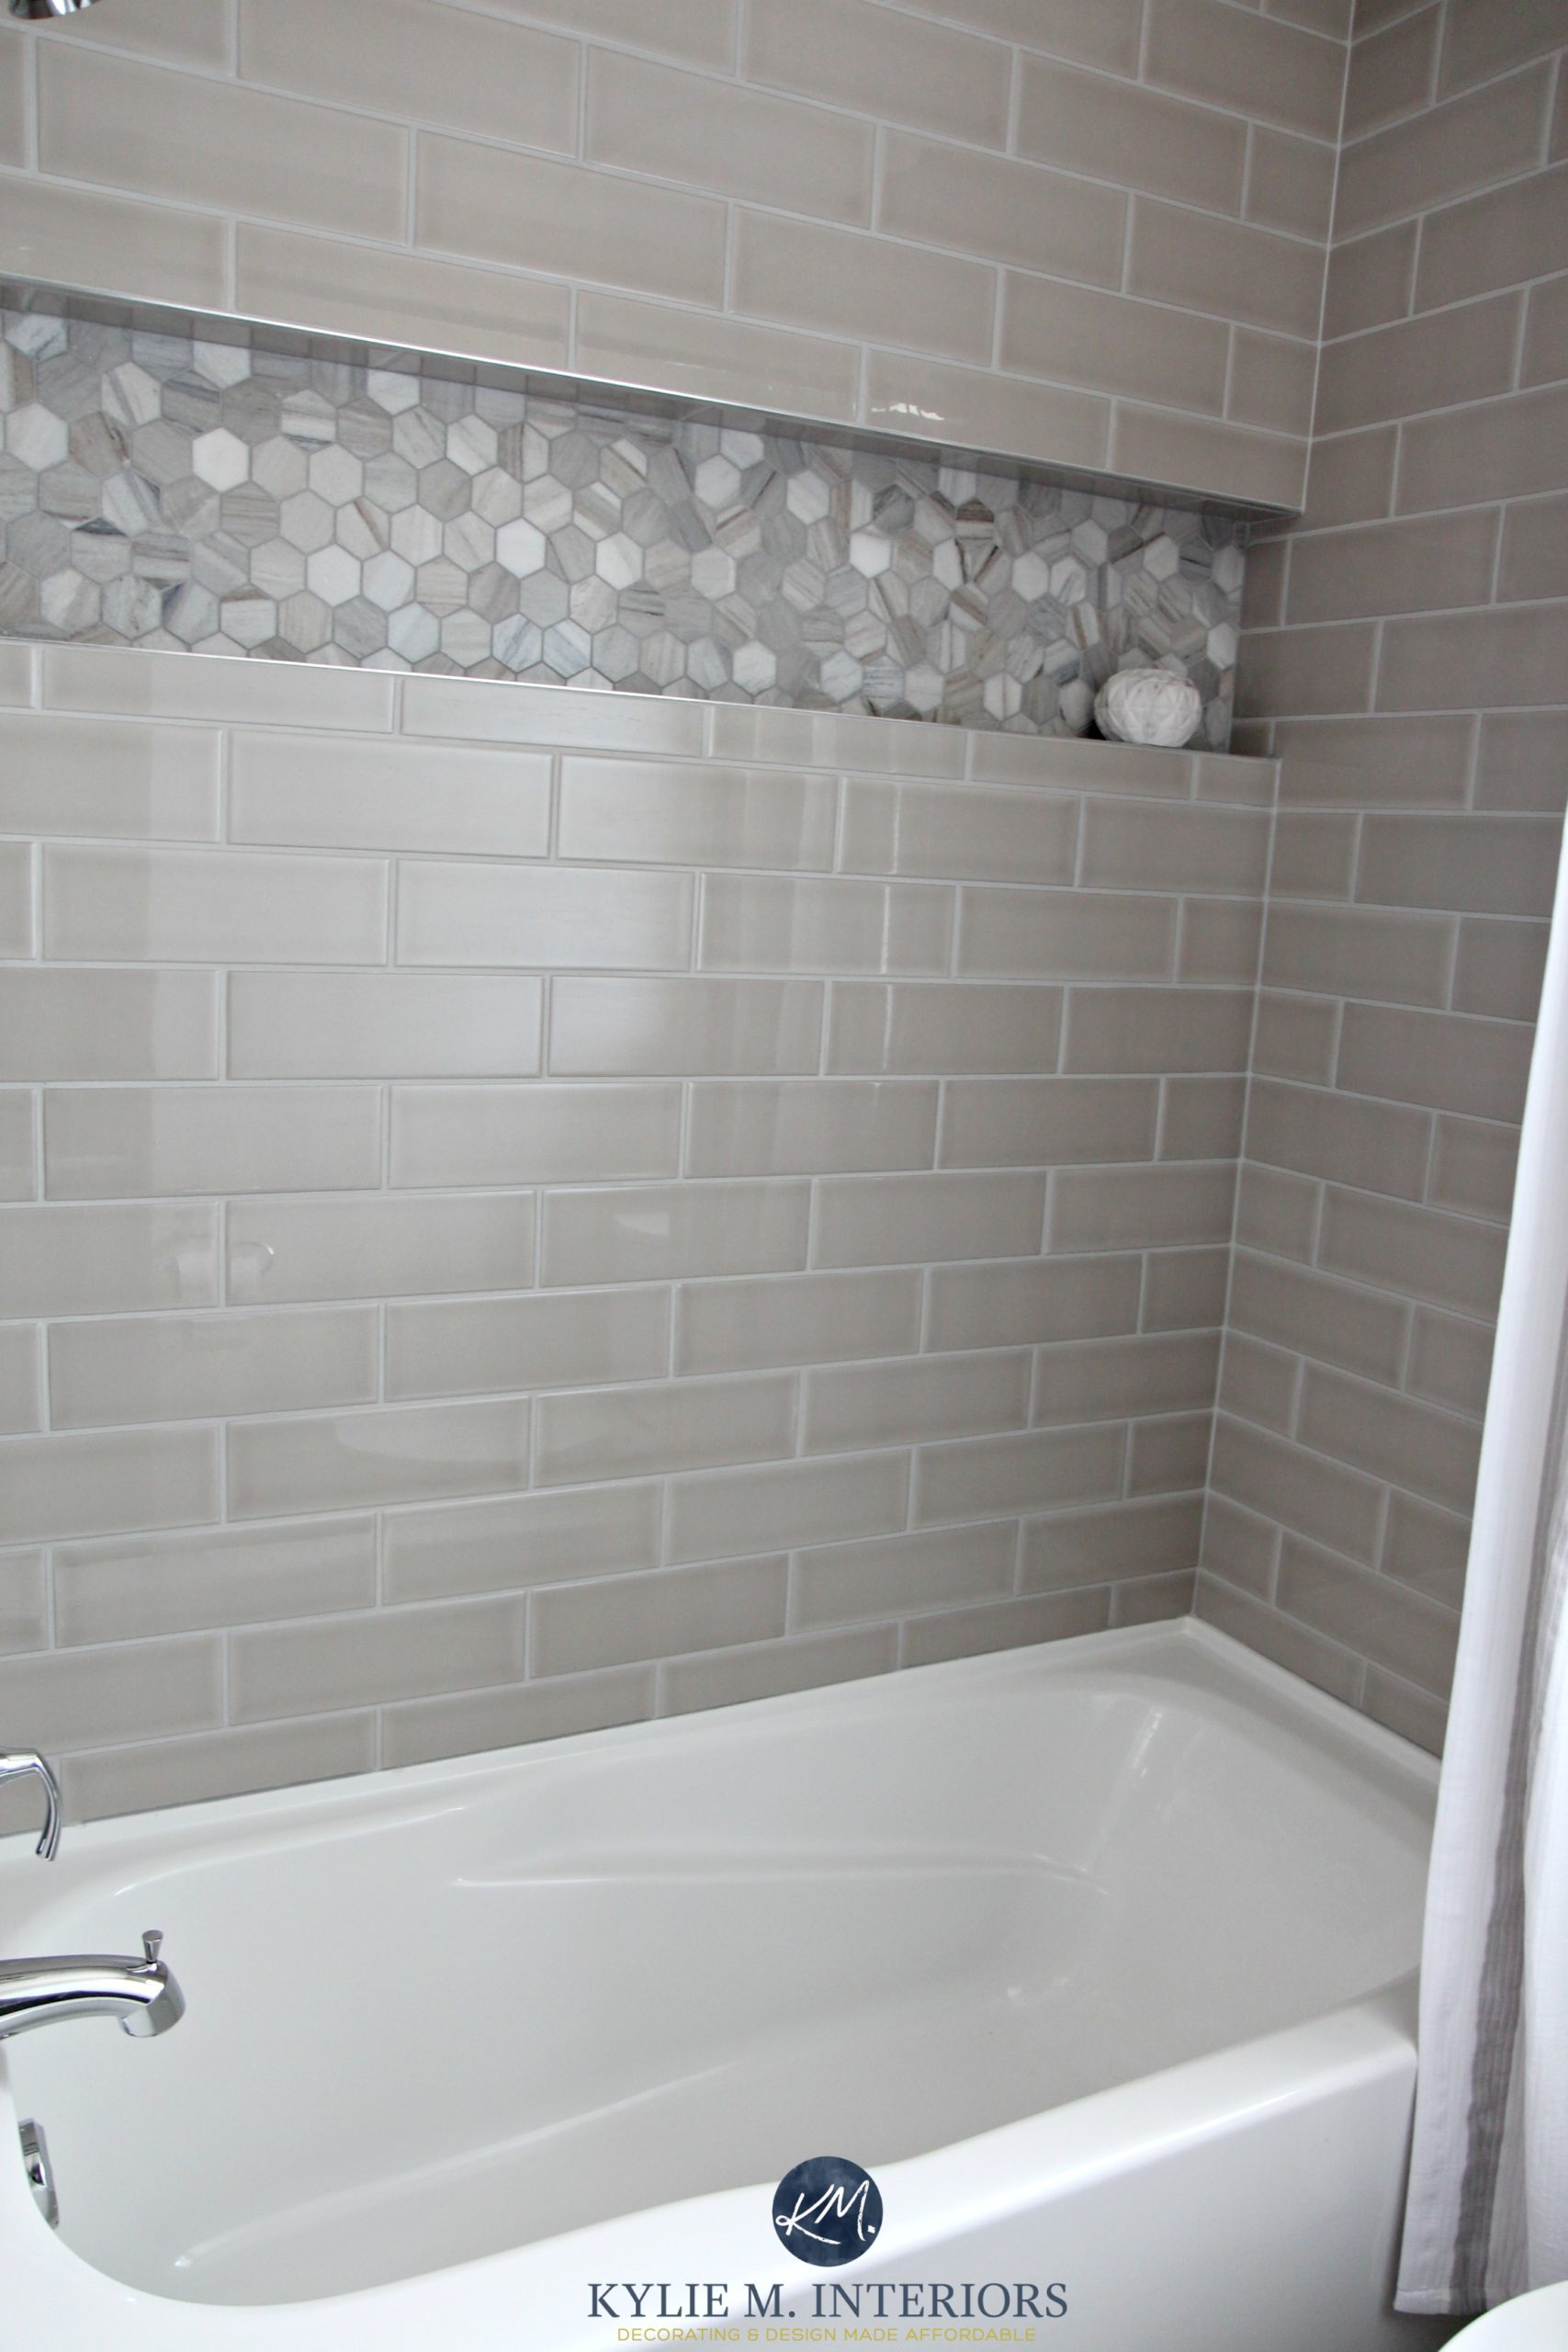 tile in rochford tec lifestyle bathrooms bathroom